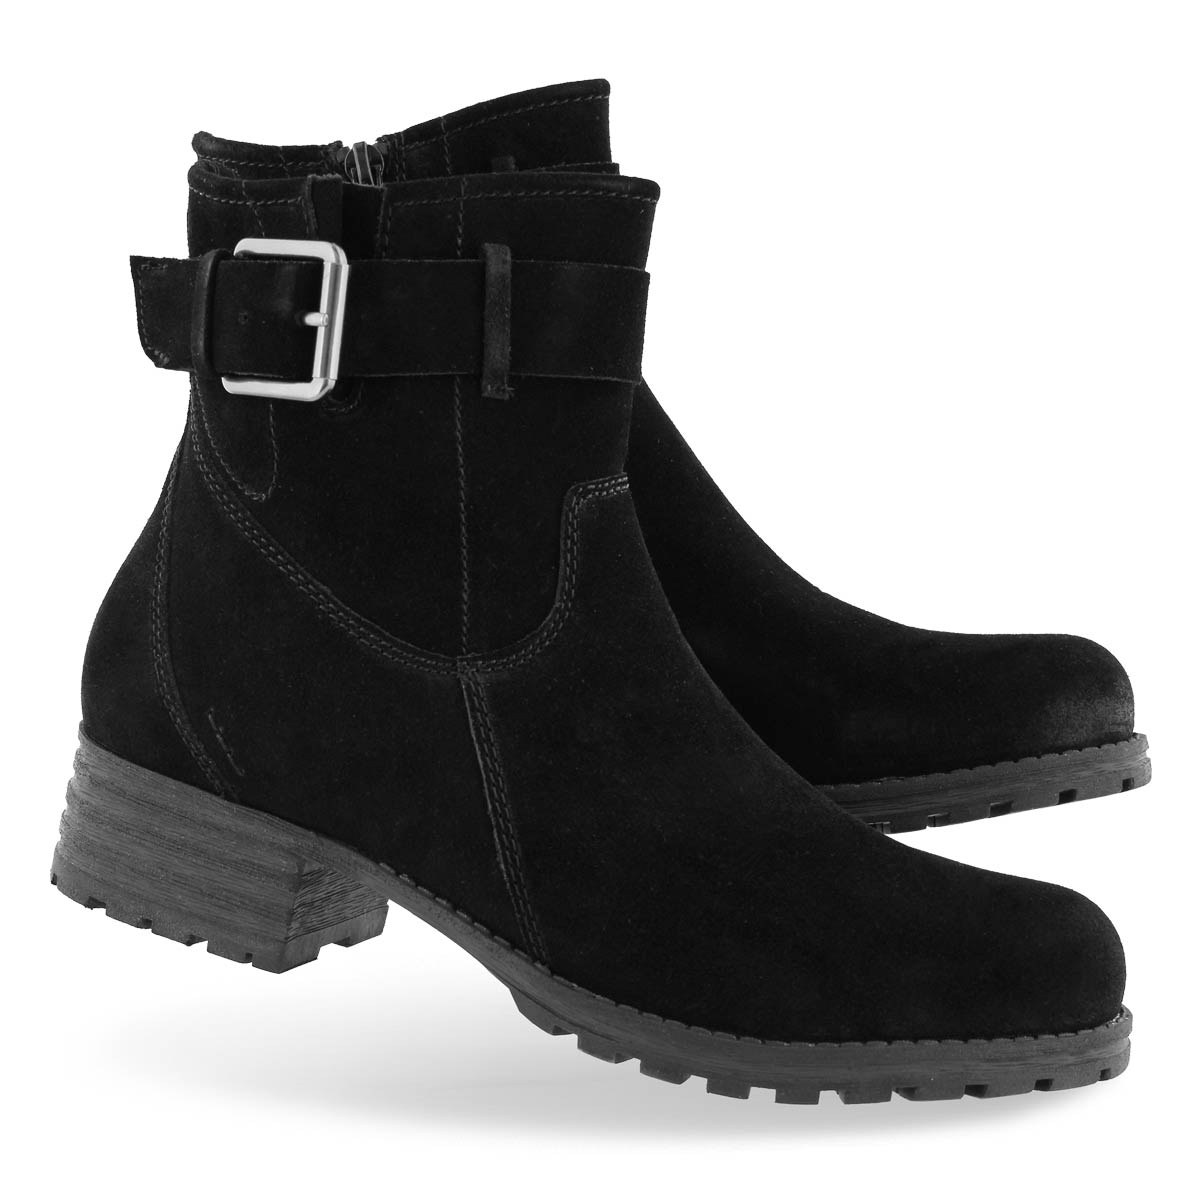 Lds Marana Amber black ankle boot